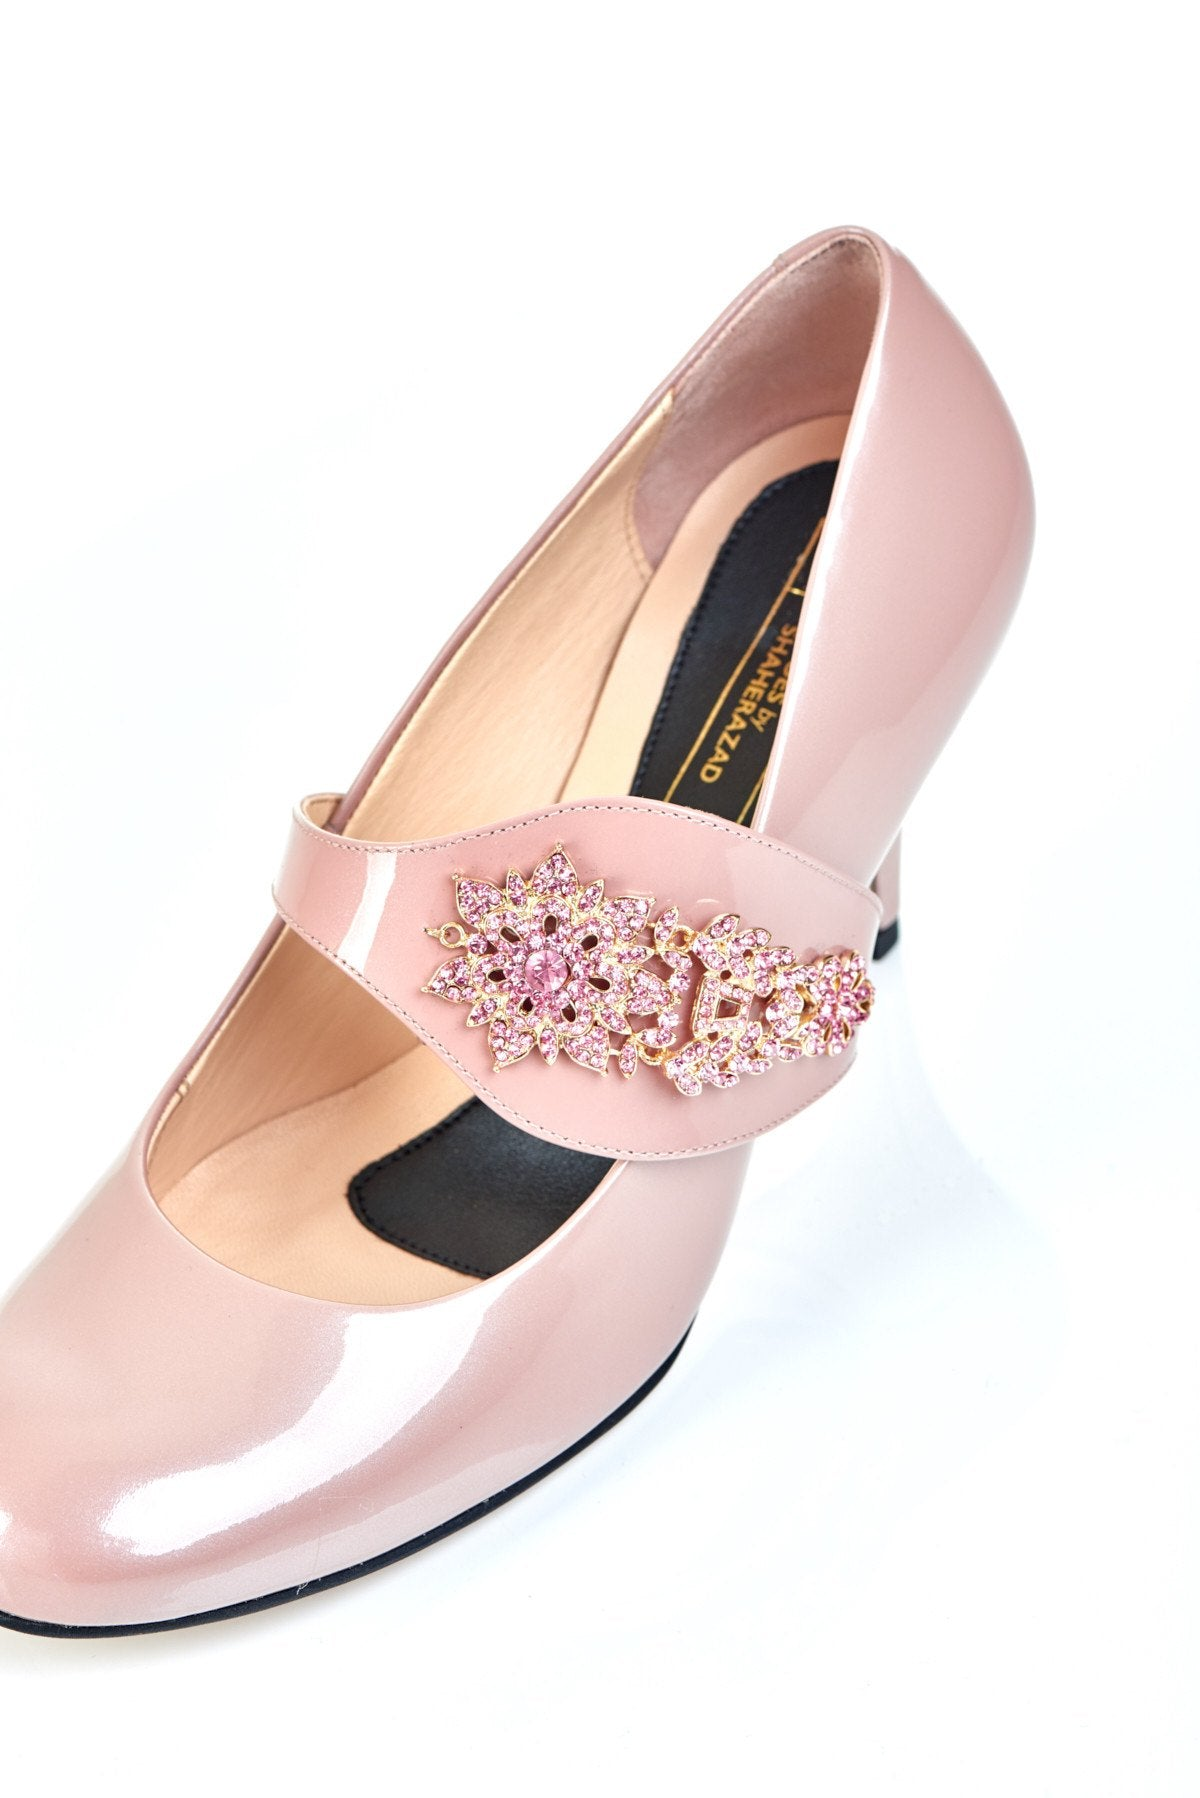 Equally Every After - Blush Shoellery - Shoes by Shaherazad